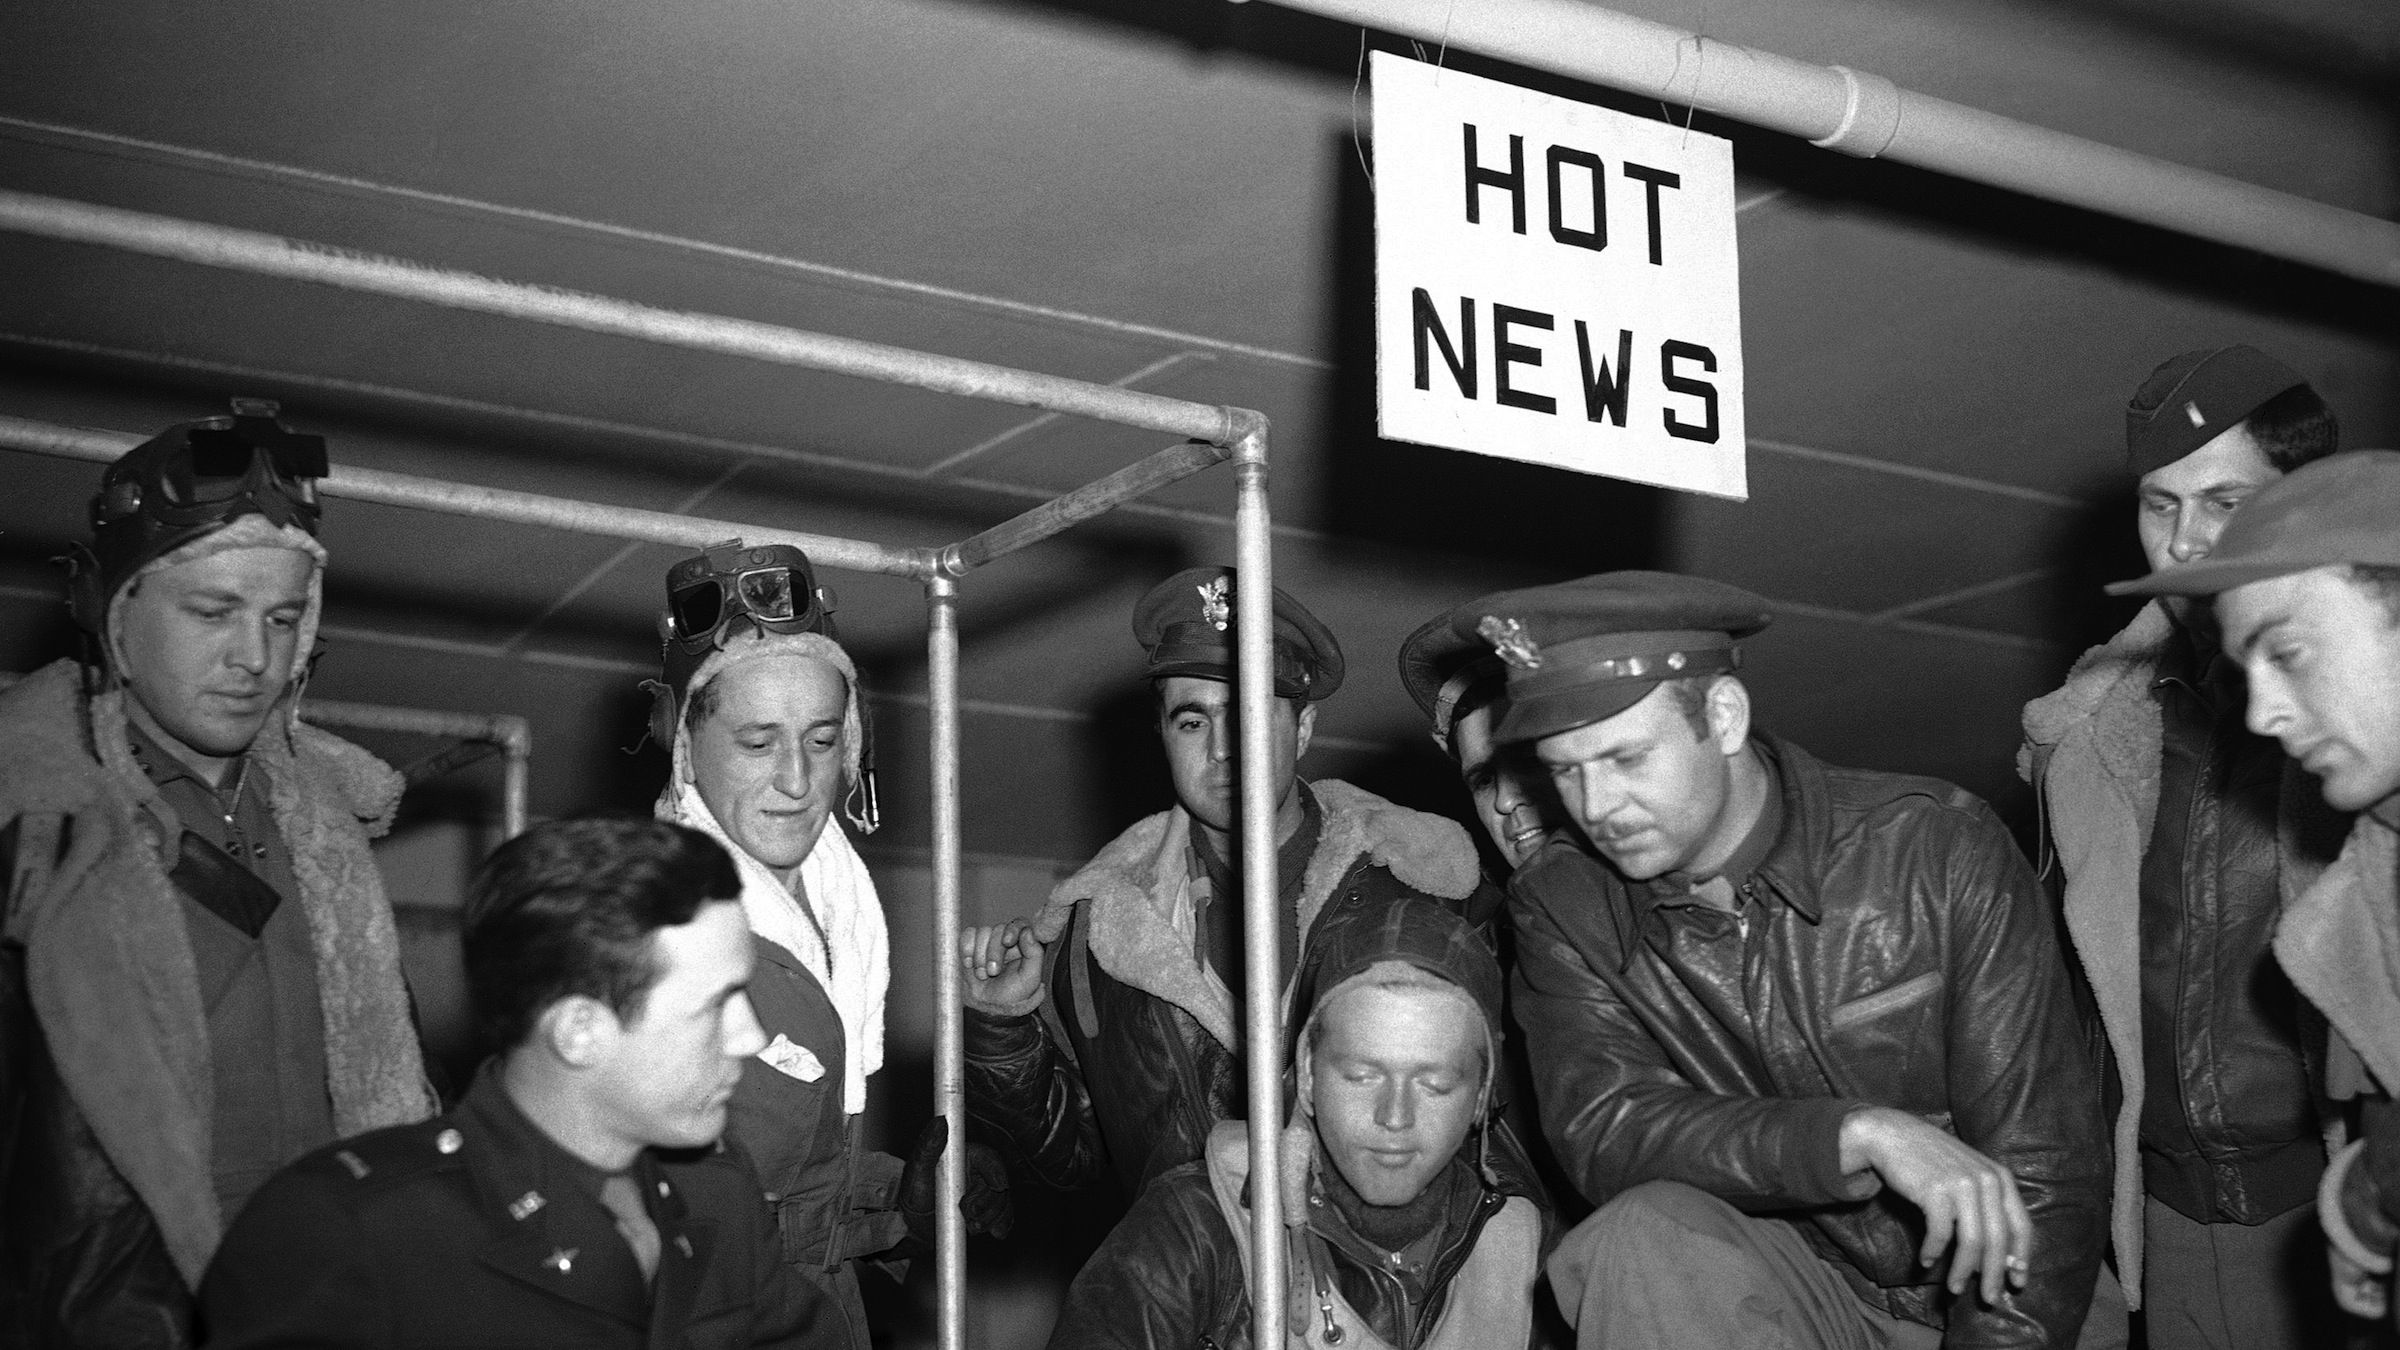 Lieutenant Roger Moran of Hornell, N.Y., (seated, in helmet) talks to intelligence officers at the ìhot newsî table in England on August 6, 1943. Standing, with arm on knee, is Lt. Curtis Burgan of Hoisington, Kan. At this table hot news, in the form of new type of enemy fighter or flak encountered, is reported immediately ñ forming a possible addition.  (AP Photo)